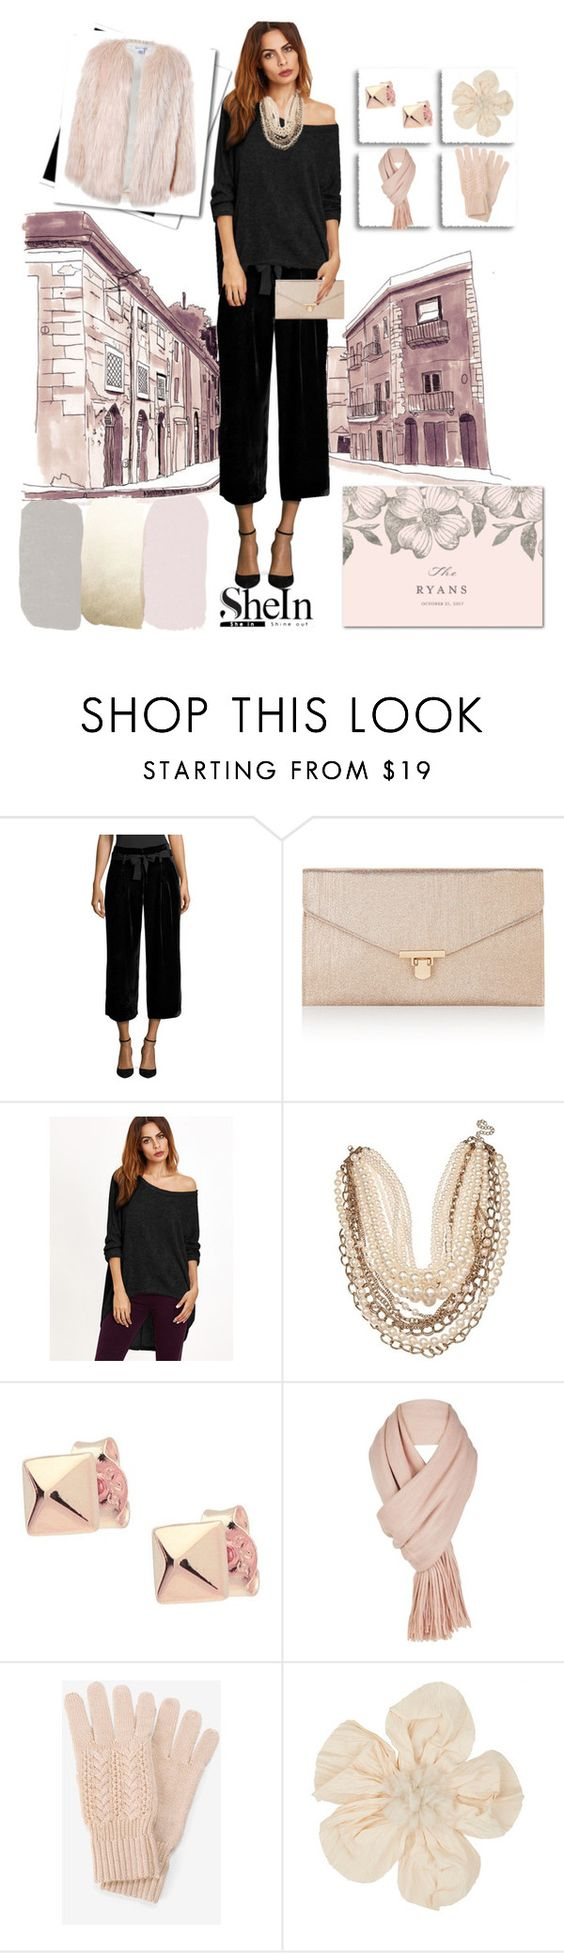 """""""Black-T-shirt"""" by manueladimauro ❤ liked on Polyvore featuring Hiche, Accessorize, Free People, White House Black Market, Lanvin and Sans Souci"""